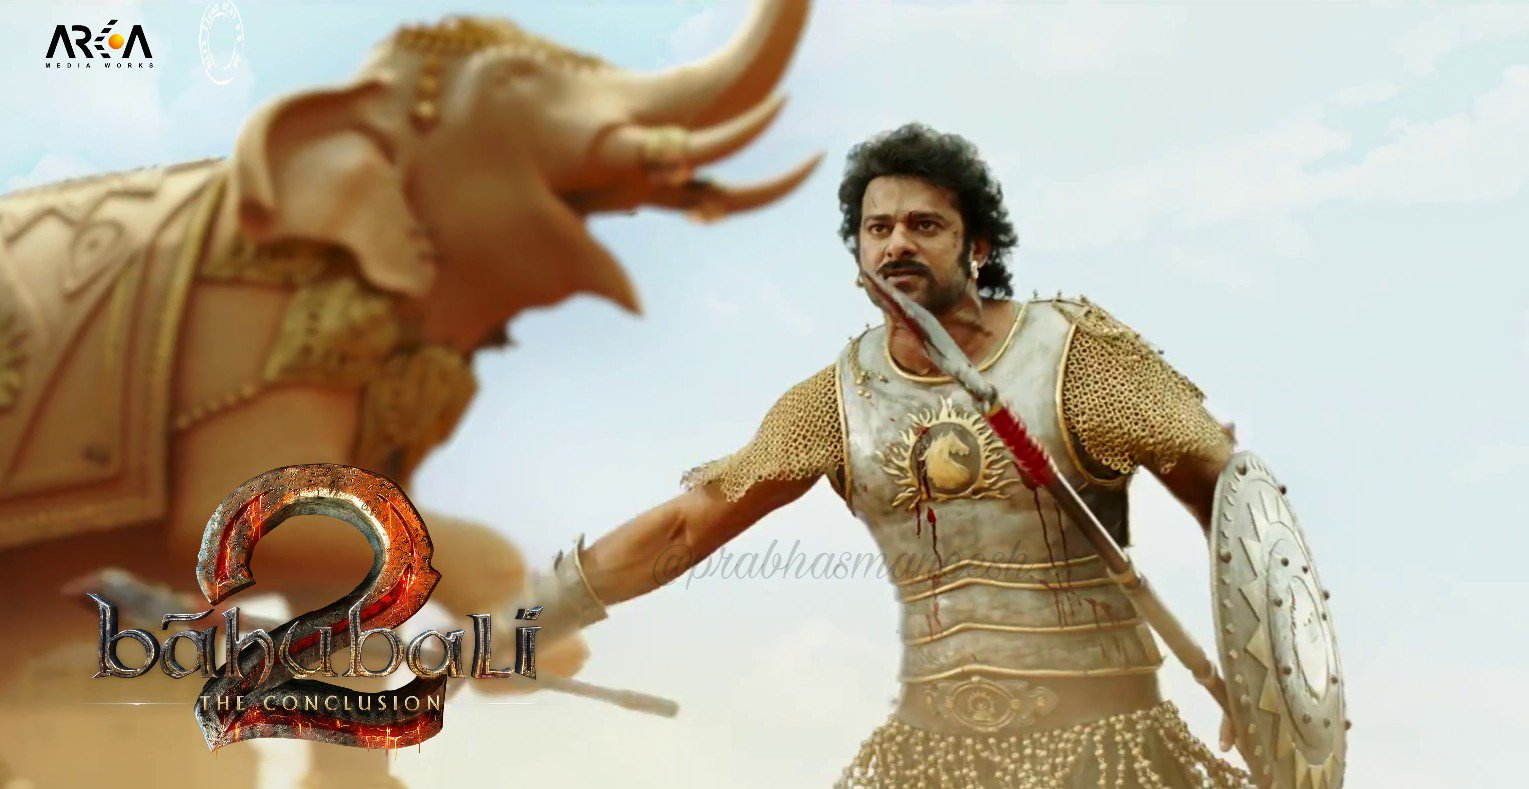 Bahubali 2 the conclusion